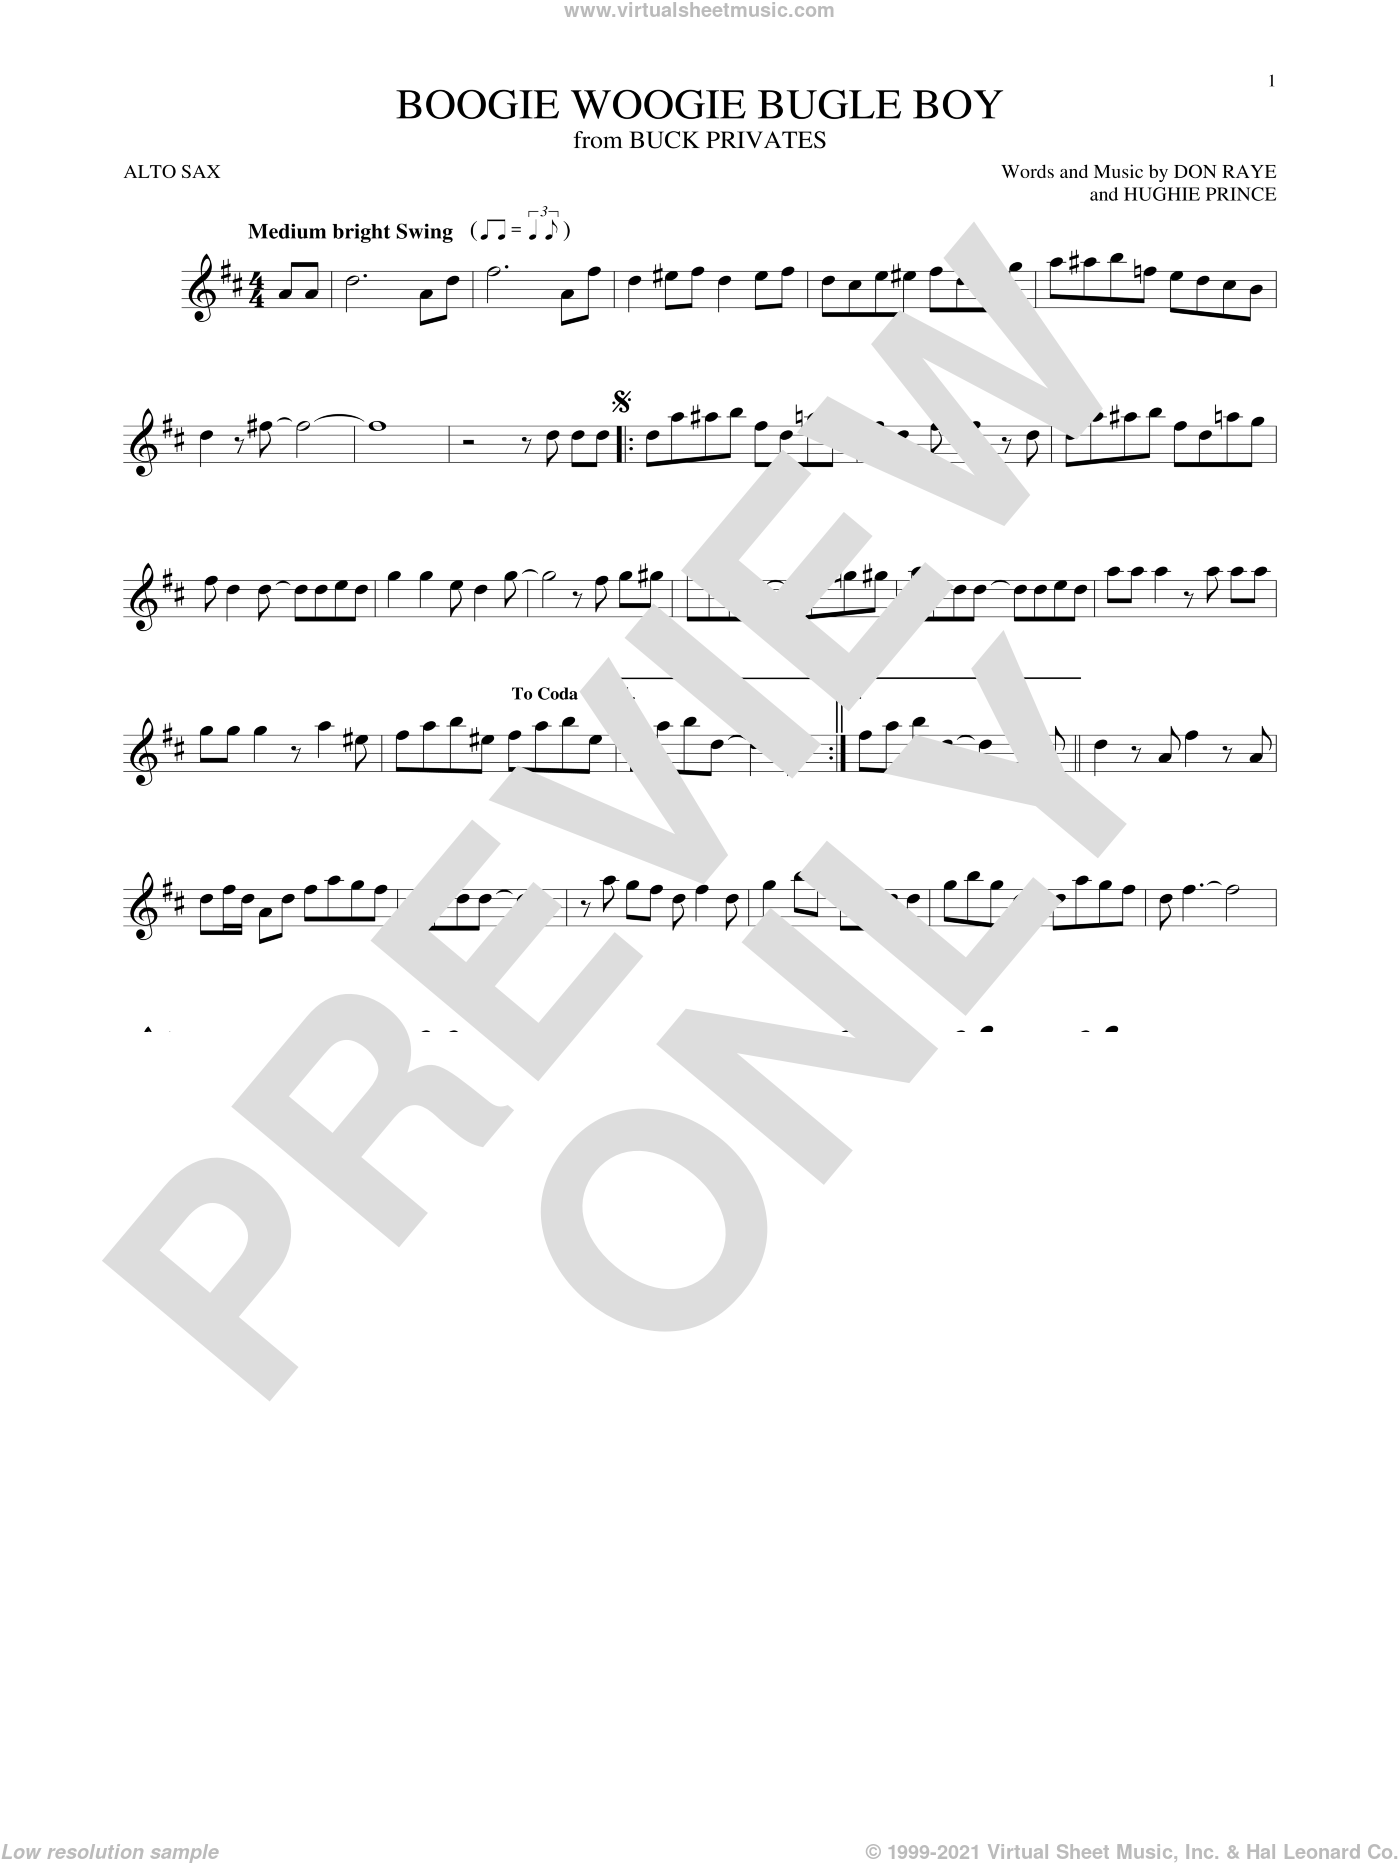 Boogie Woogie Bugle Boy sheet music for alto saxophone solo by Hughie Prince, Bette Midler and Don Raye. Score Image Preview.